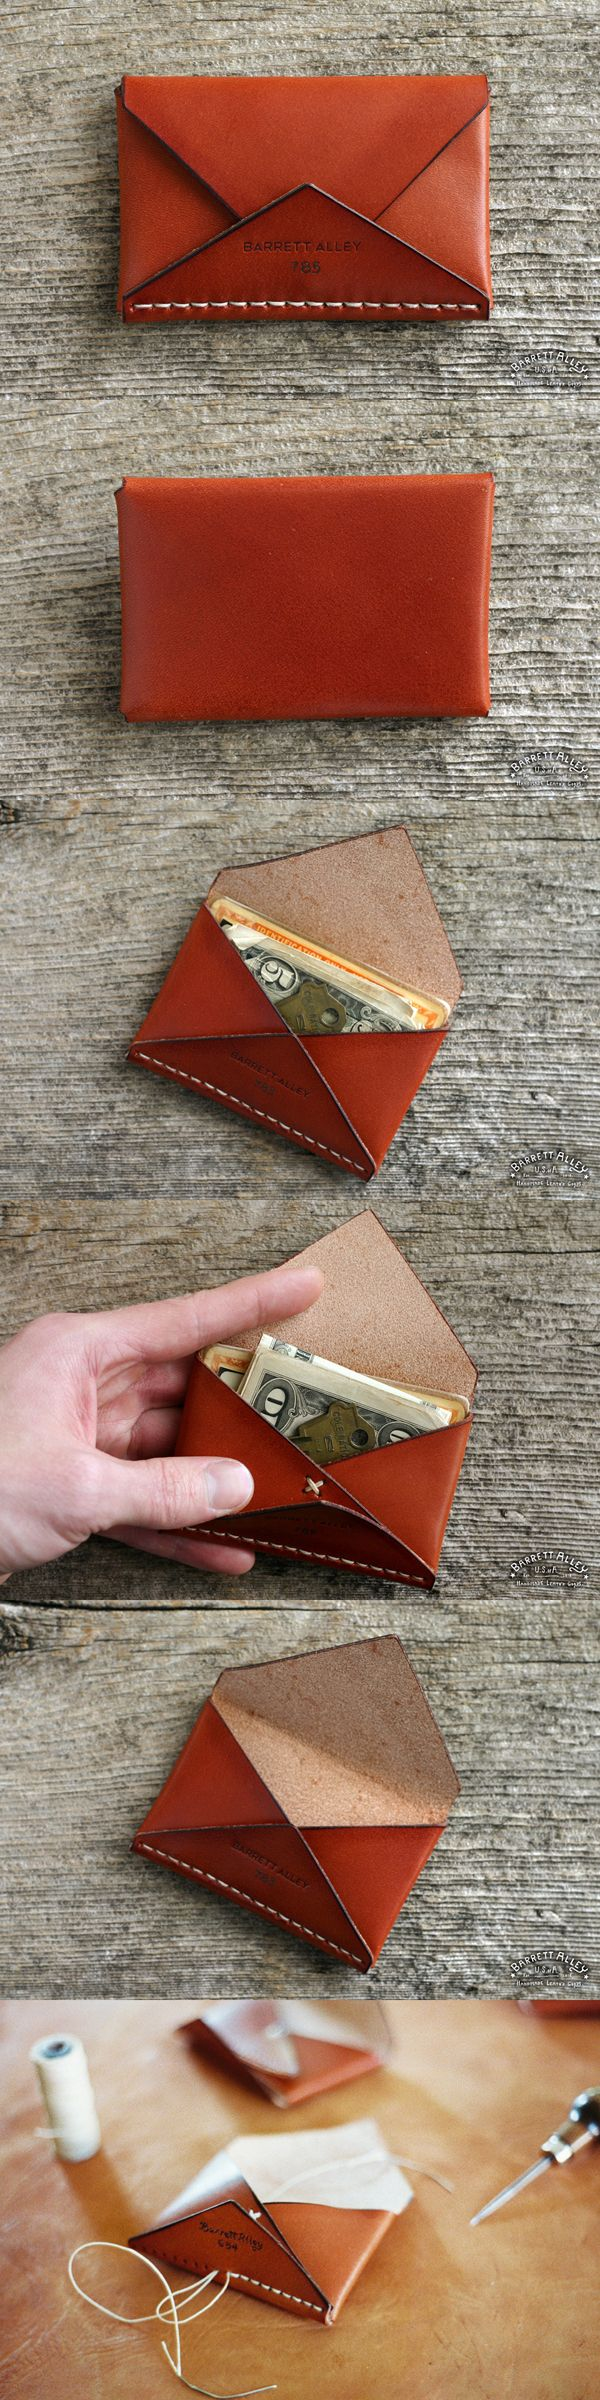 Disciple Wallet in Russet The perfect leather card holder. http://www.barrettalley.com-SR